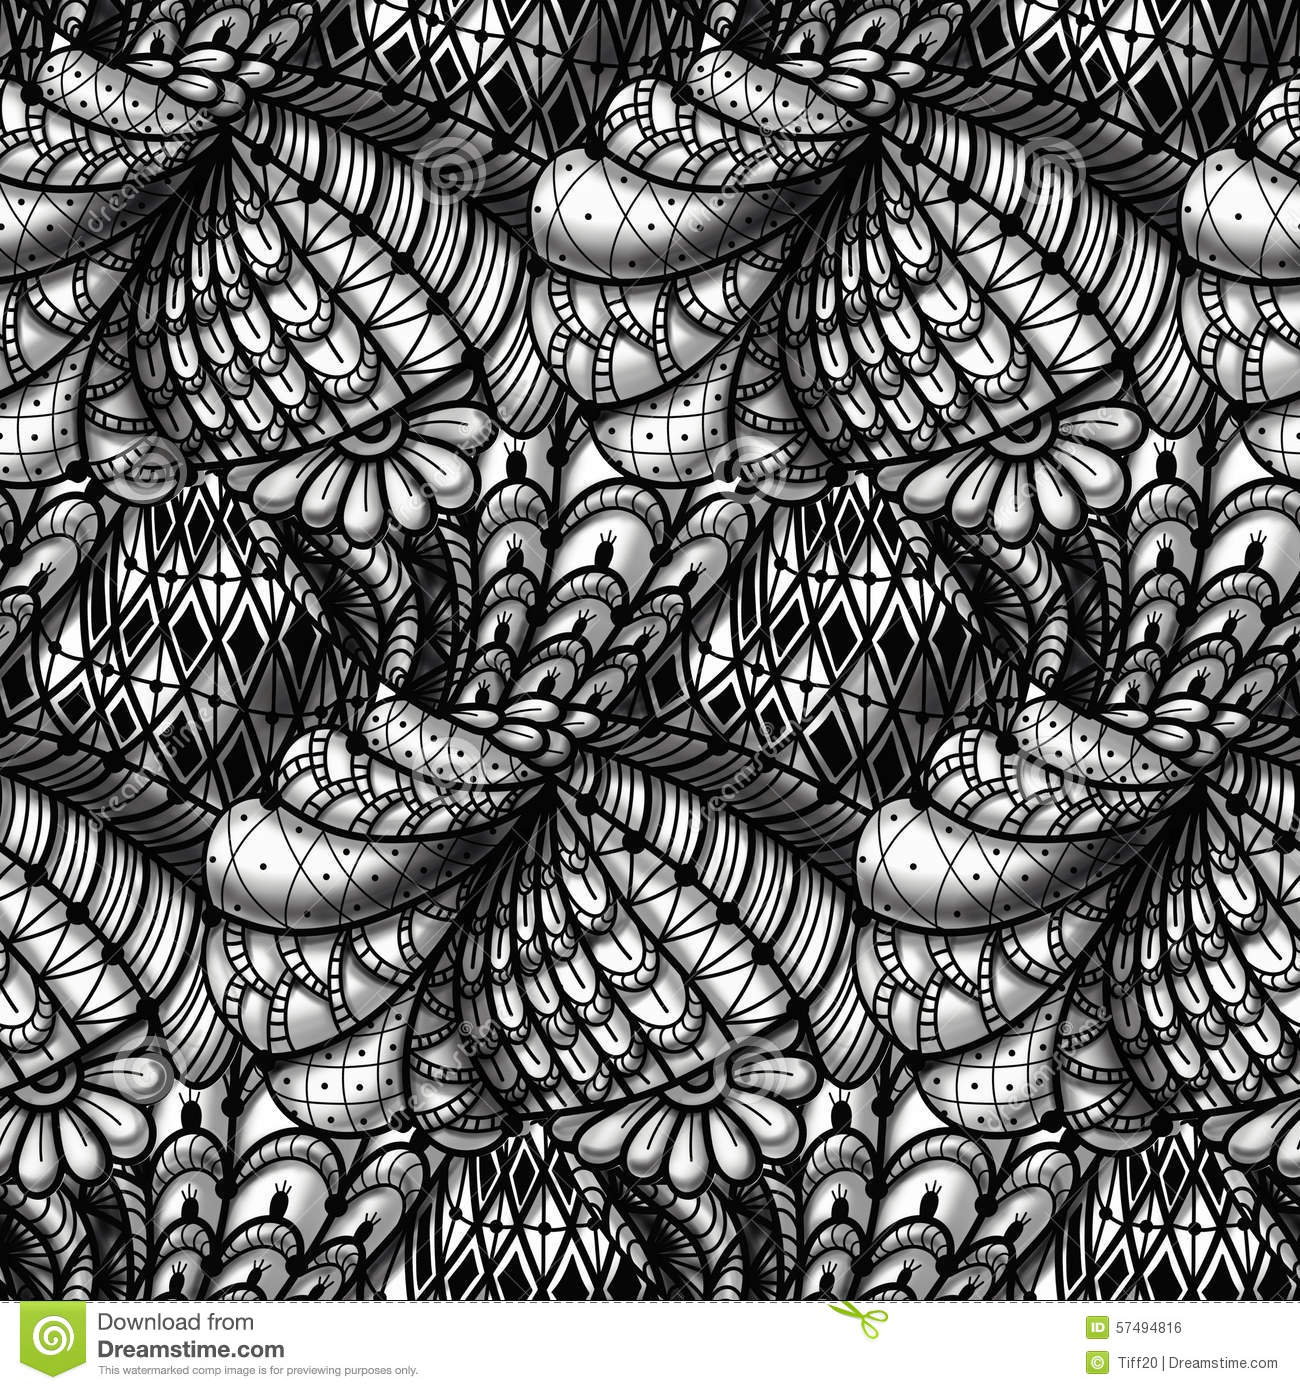 Monochrome hand drawn seamless pattern in style zentangle.